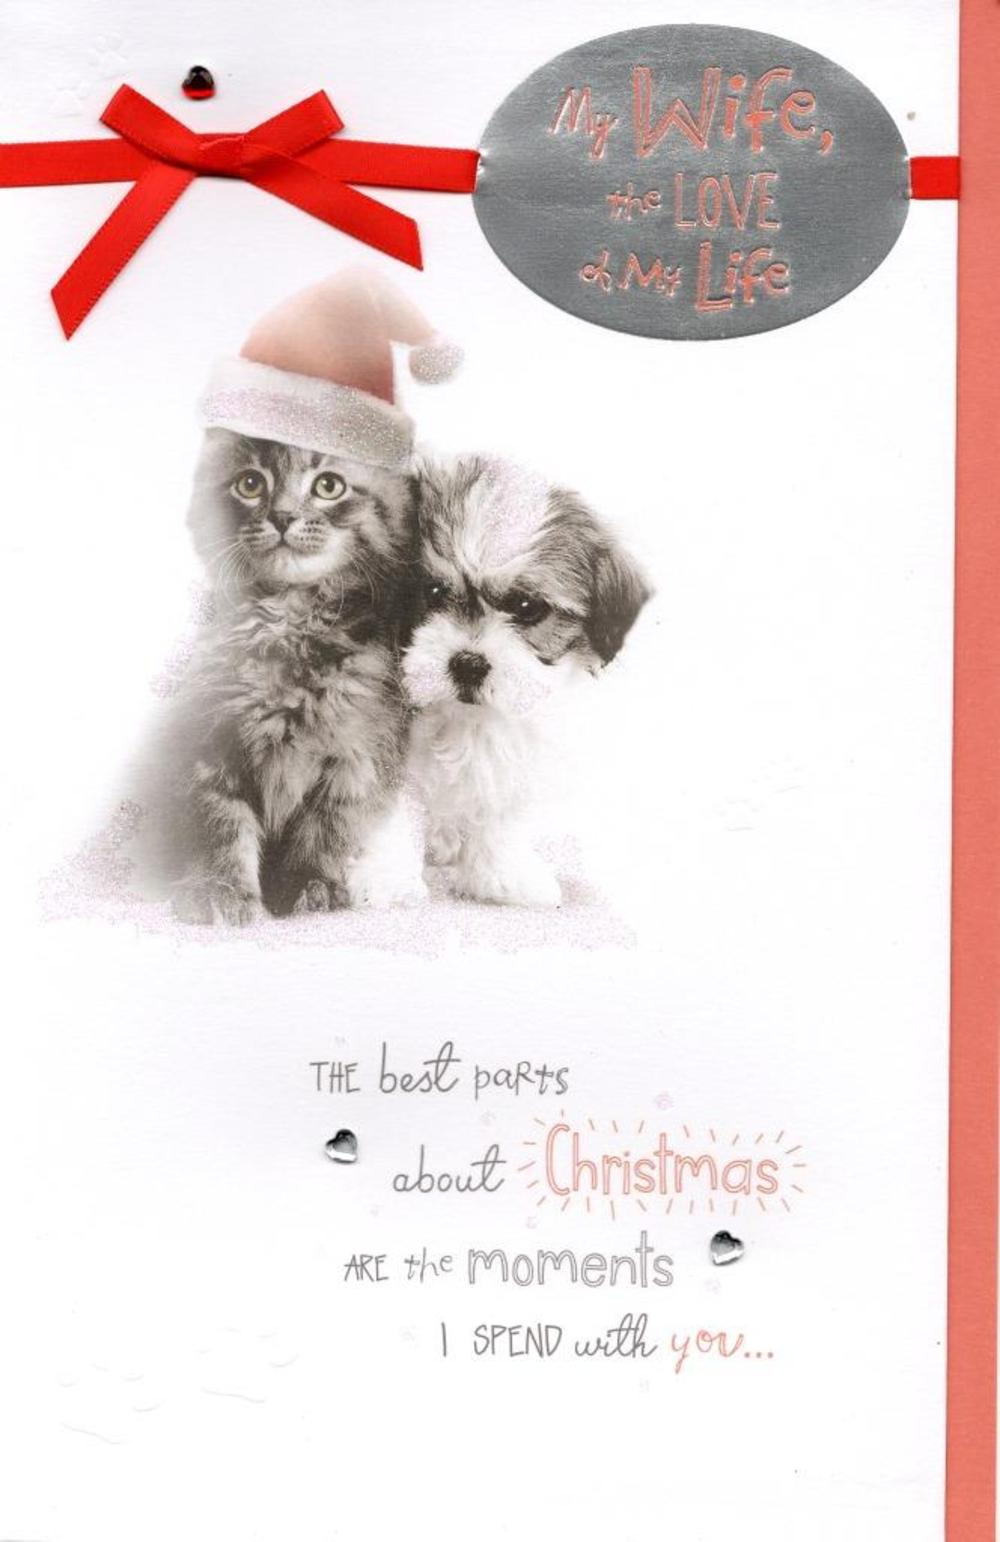 Cute wife love of my life christmas greeting card cards love kates cute wife love of my life christmas greeting card m4hsunfo